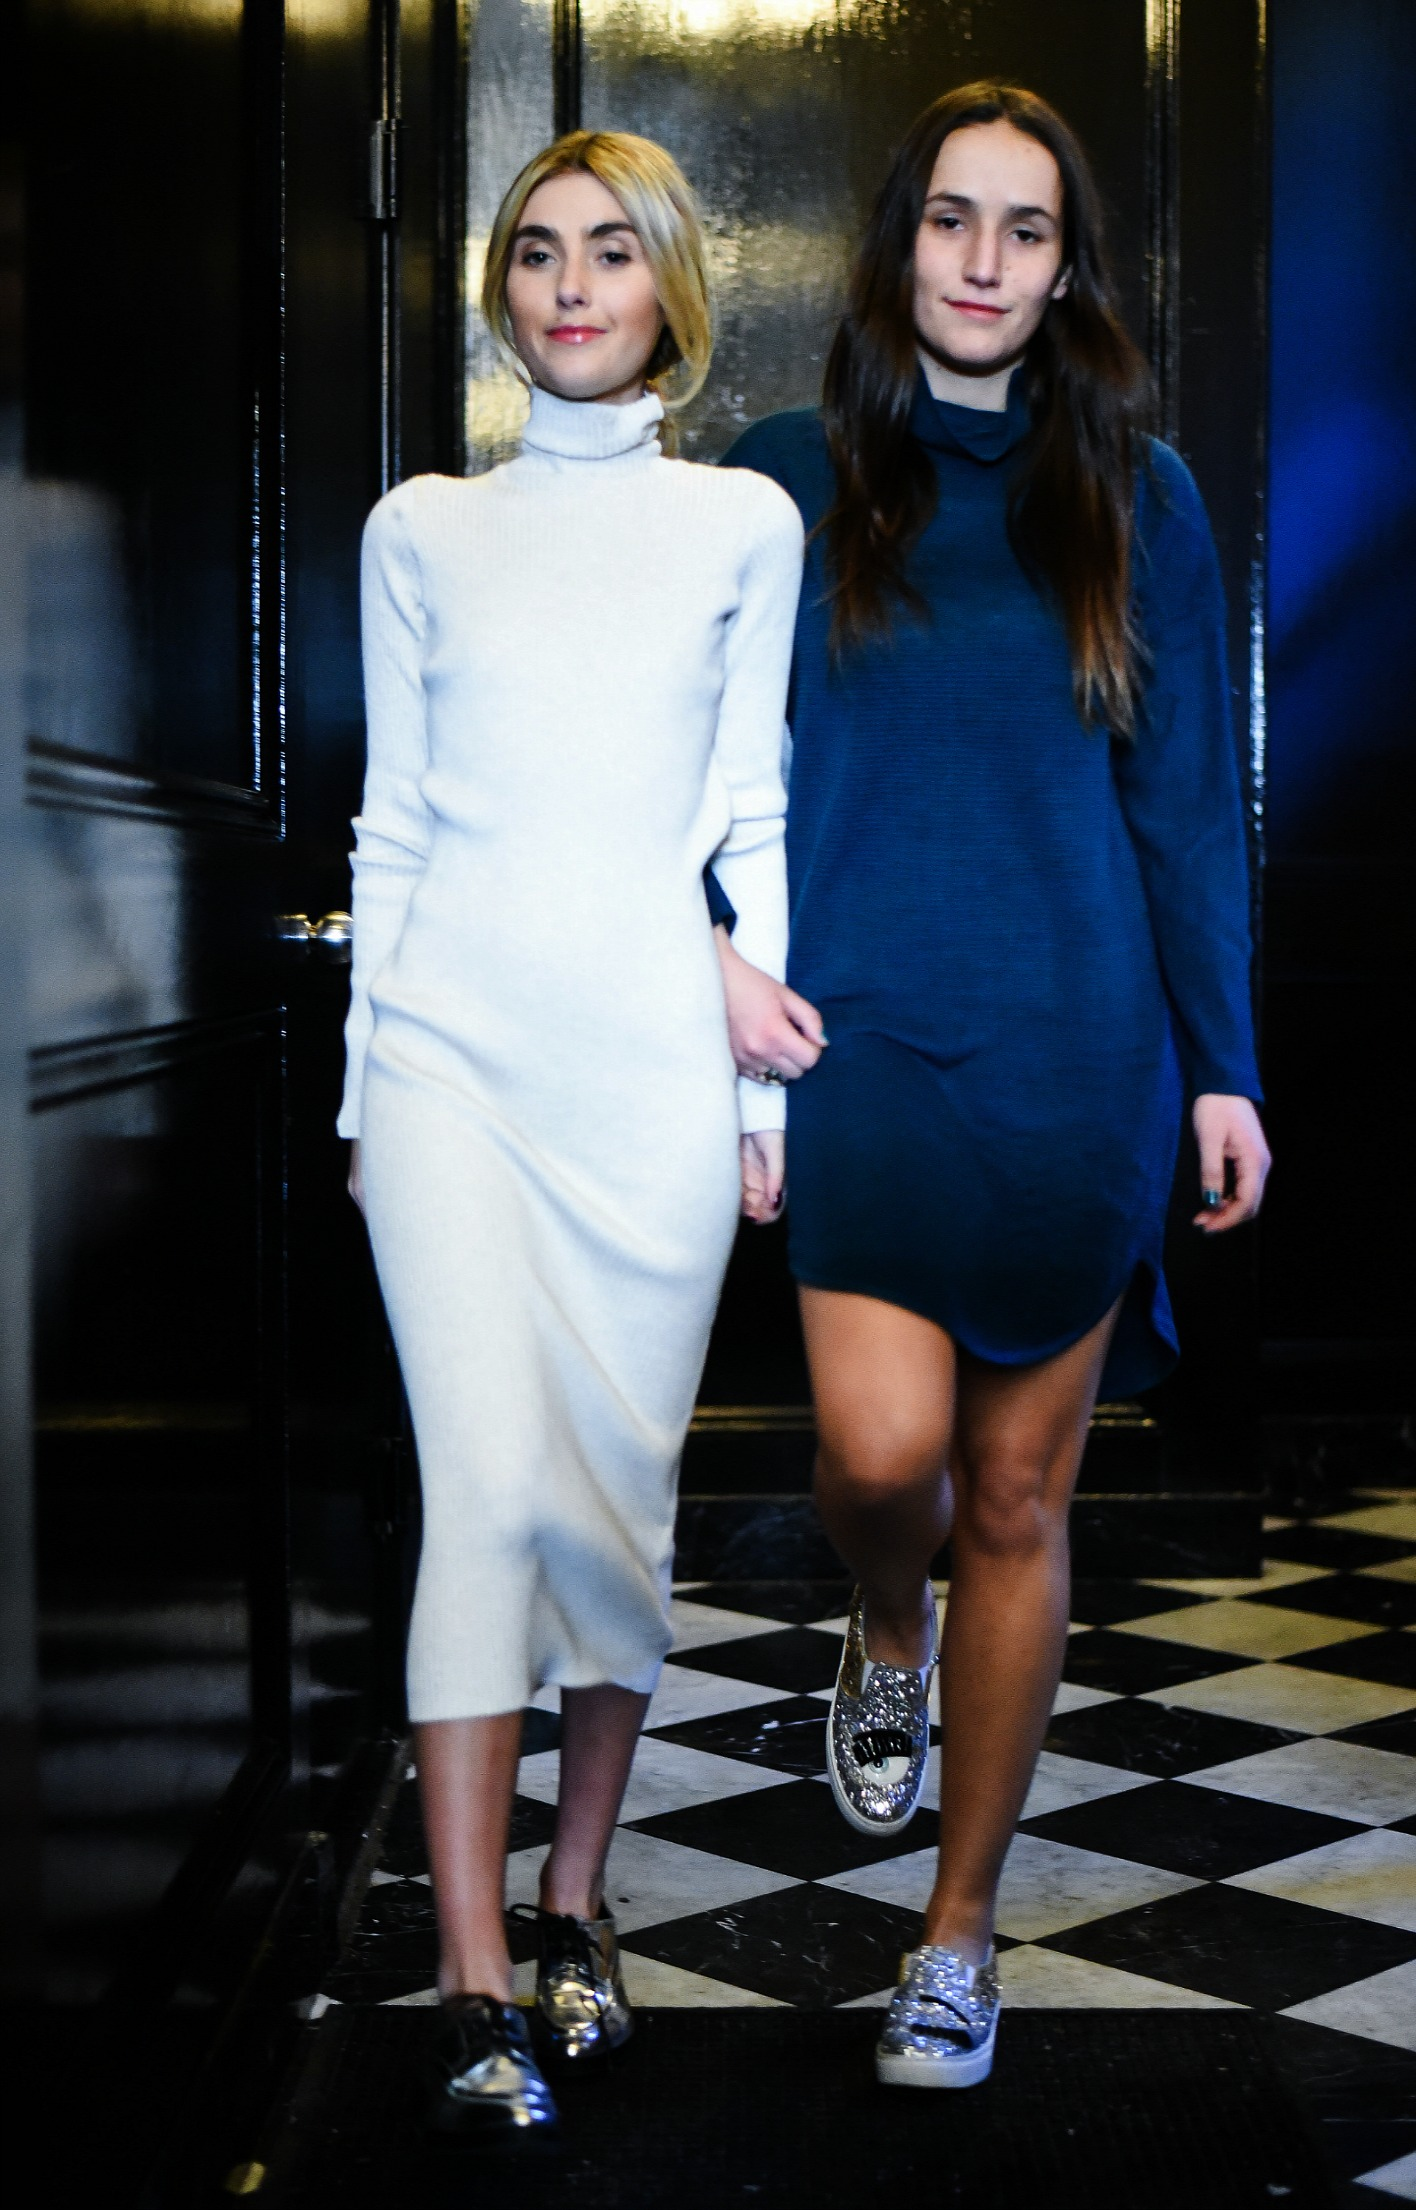 SOPHIE AND CHARLOTTE BICKLEY YIN 2MY YANG SISTER FASHION BLOGGERS NYC SWEATER DRESSES POST